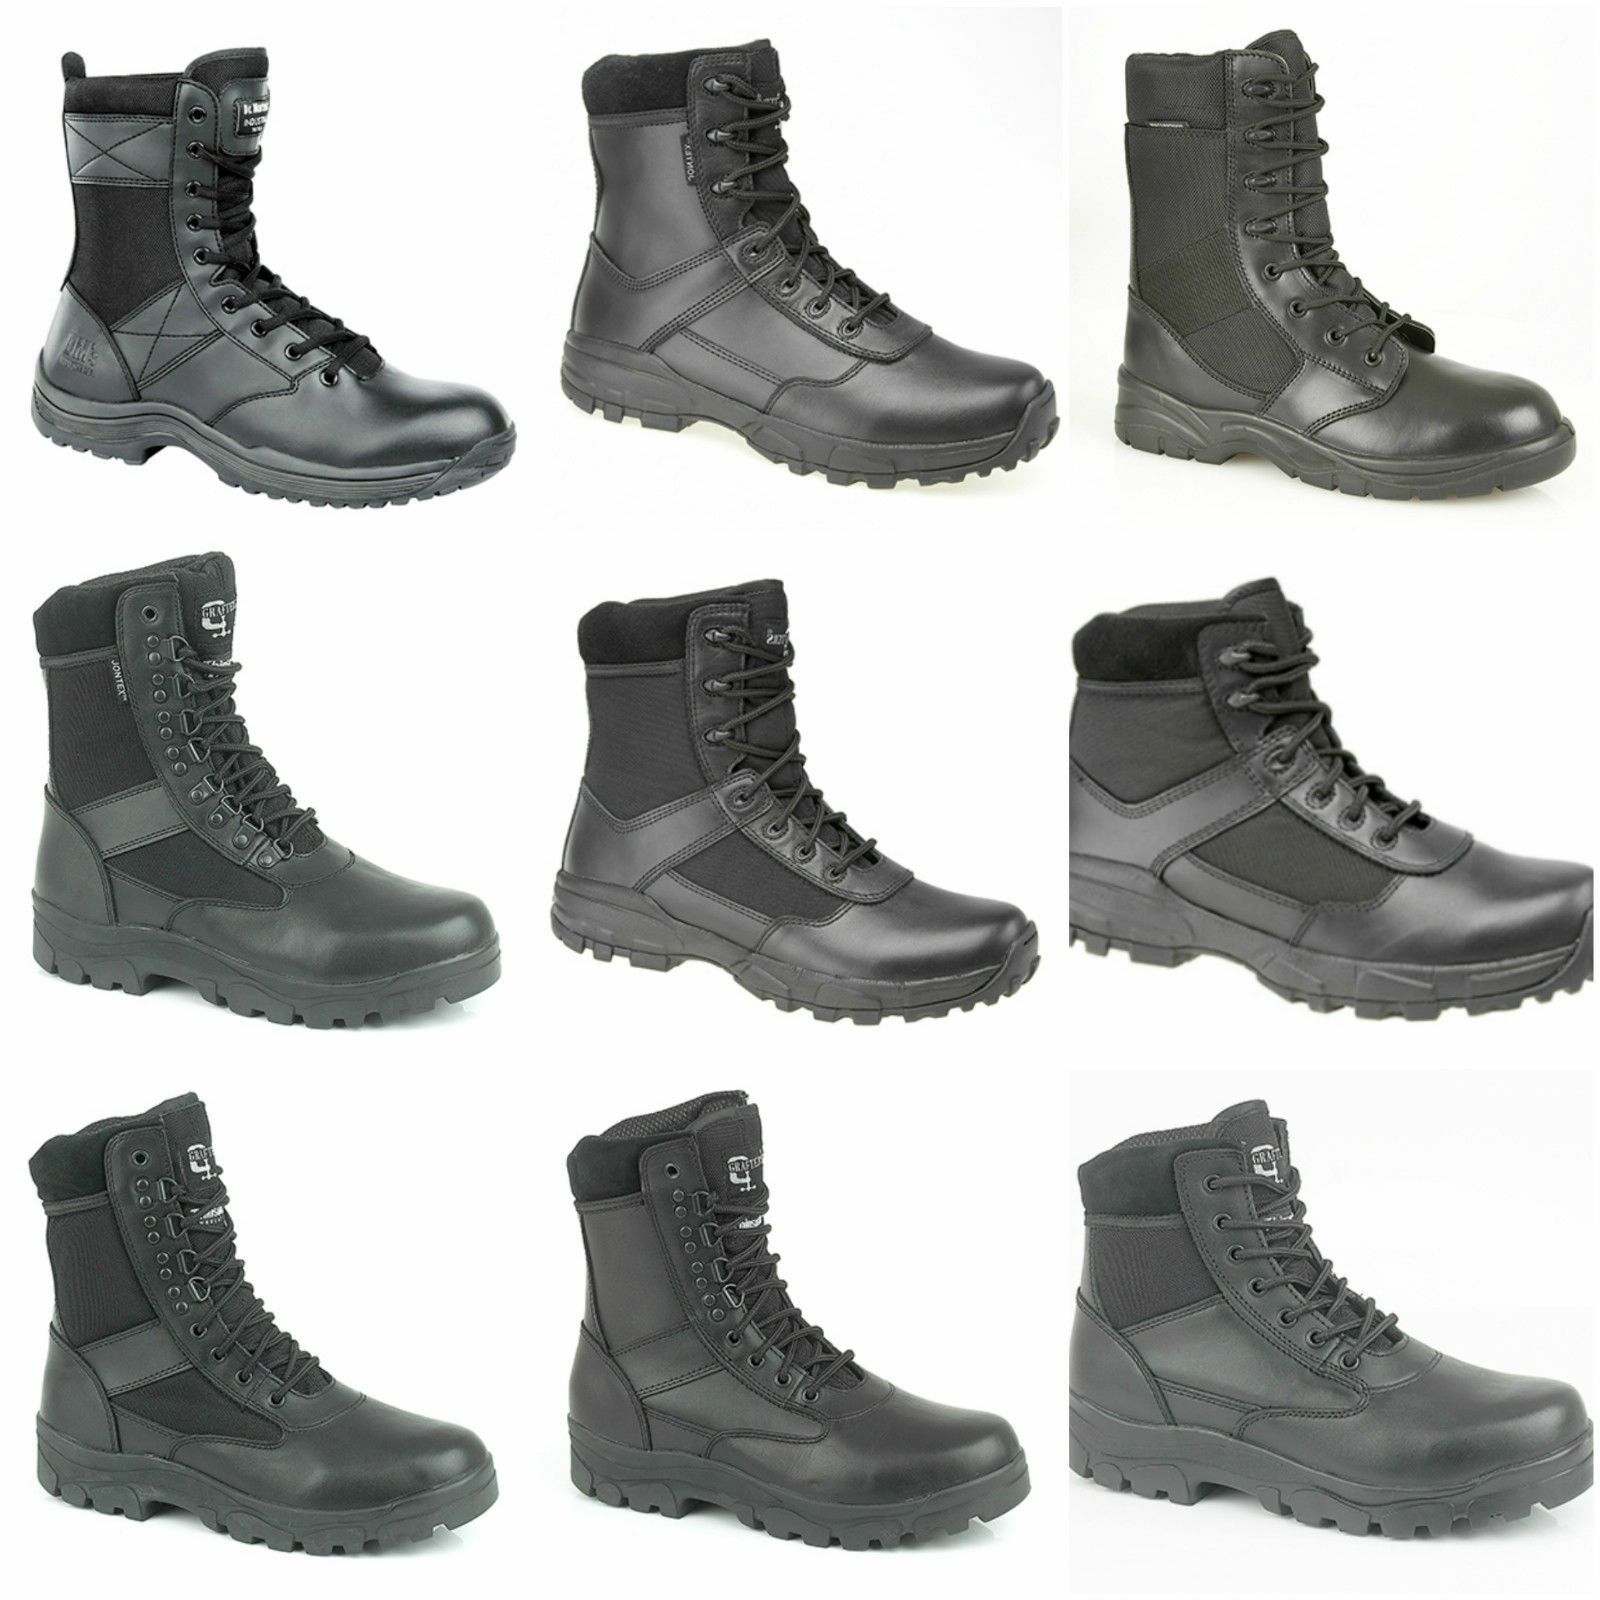 Hombre Boys Security Police Patrol botas. Work botas. Hi-Leg Combat/Occupational botas. Patrol 7d7005